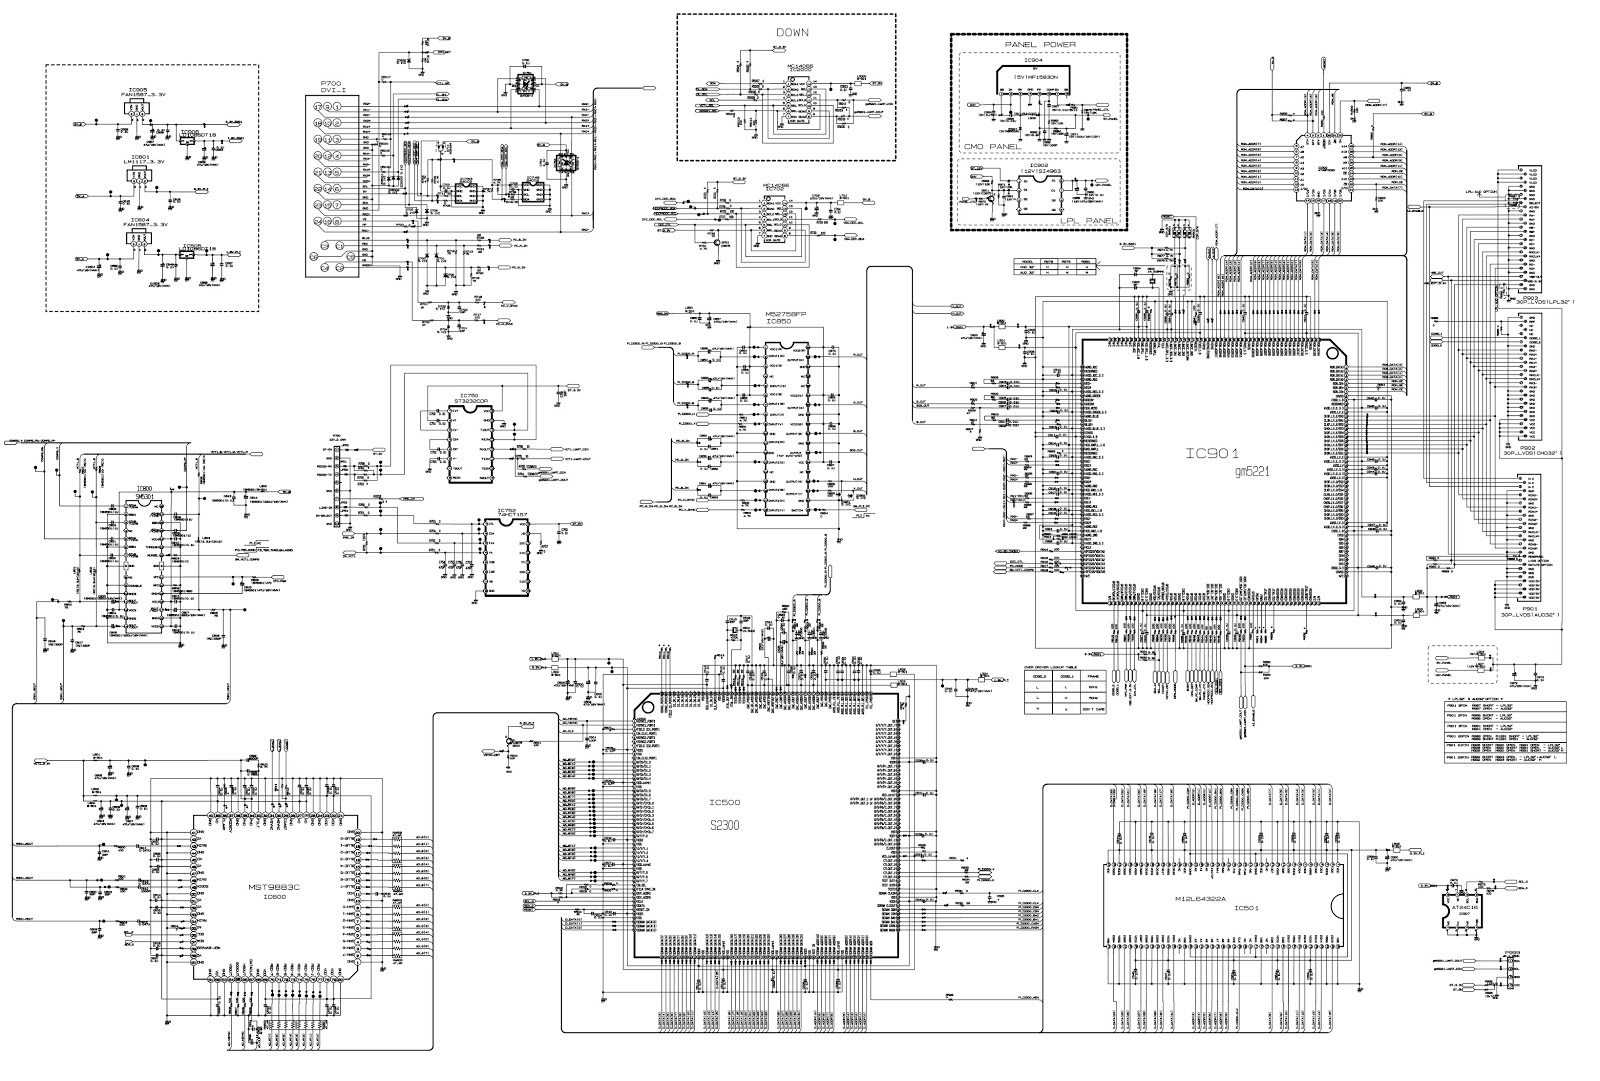 small resolution of lg rz23lz55 lcd tv schematic circuit diagram schematic diagrams rh schematicscom blogspot com